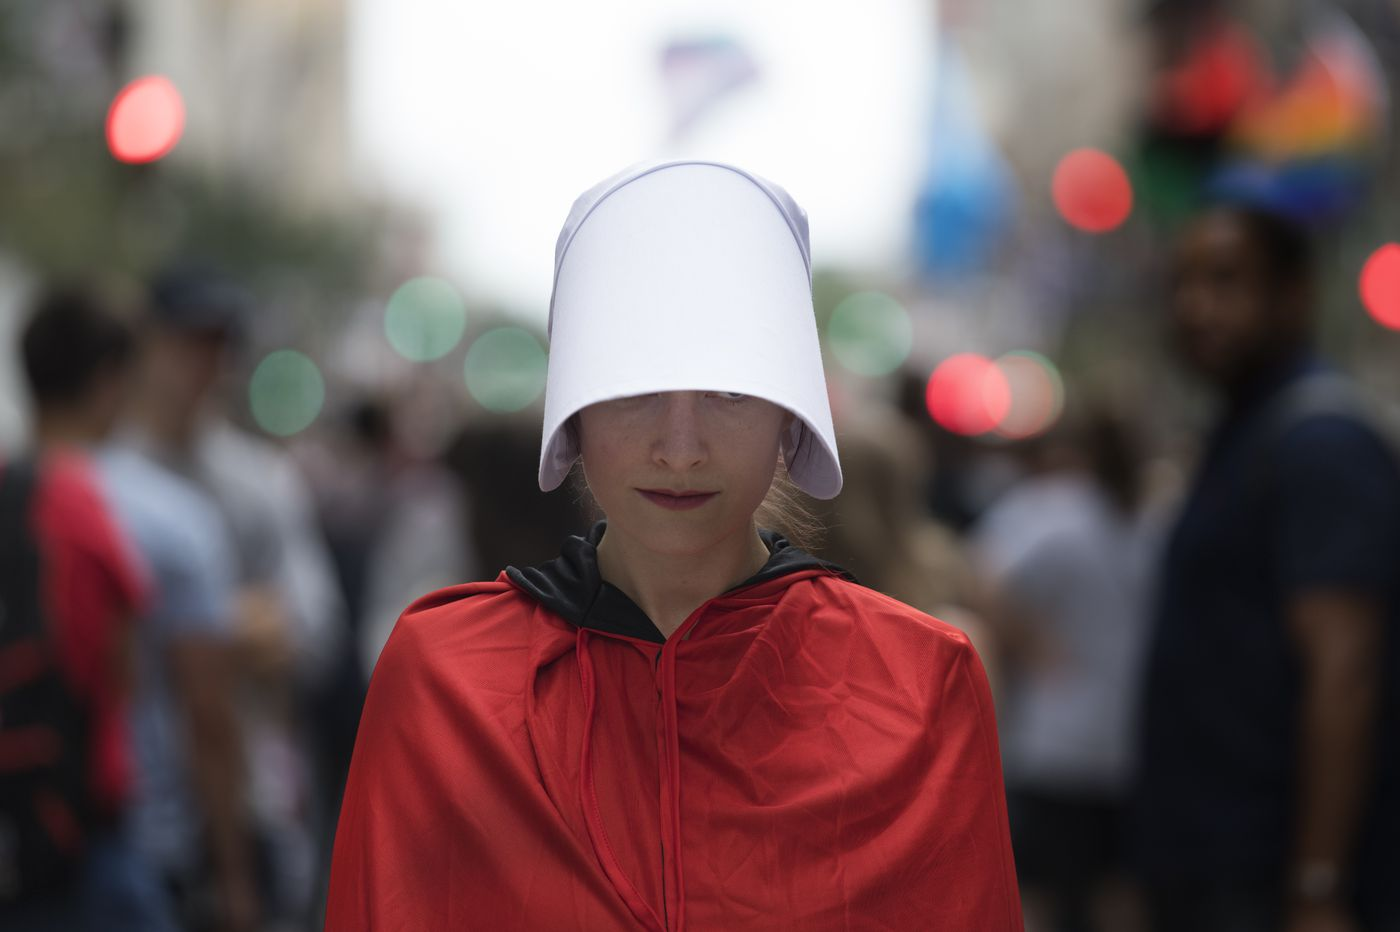 Women dressed in 'Handmaid's Tale' garb protest Pence in Philly